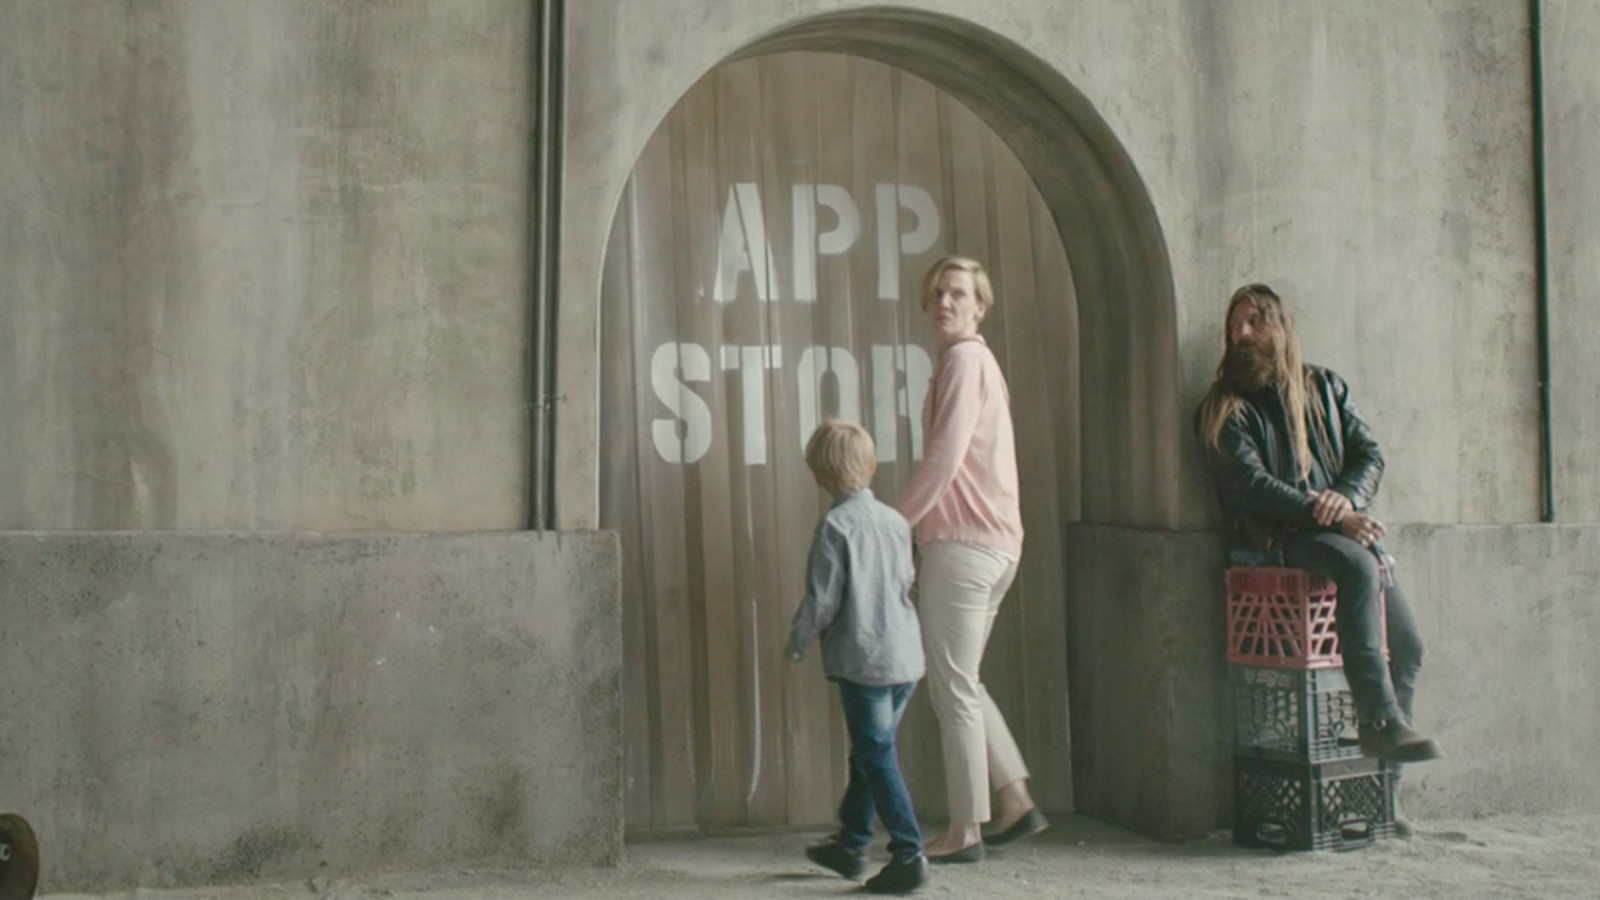 Watch: Apple's New Video Depicts a World Without Apps